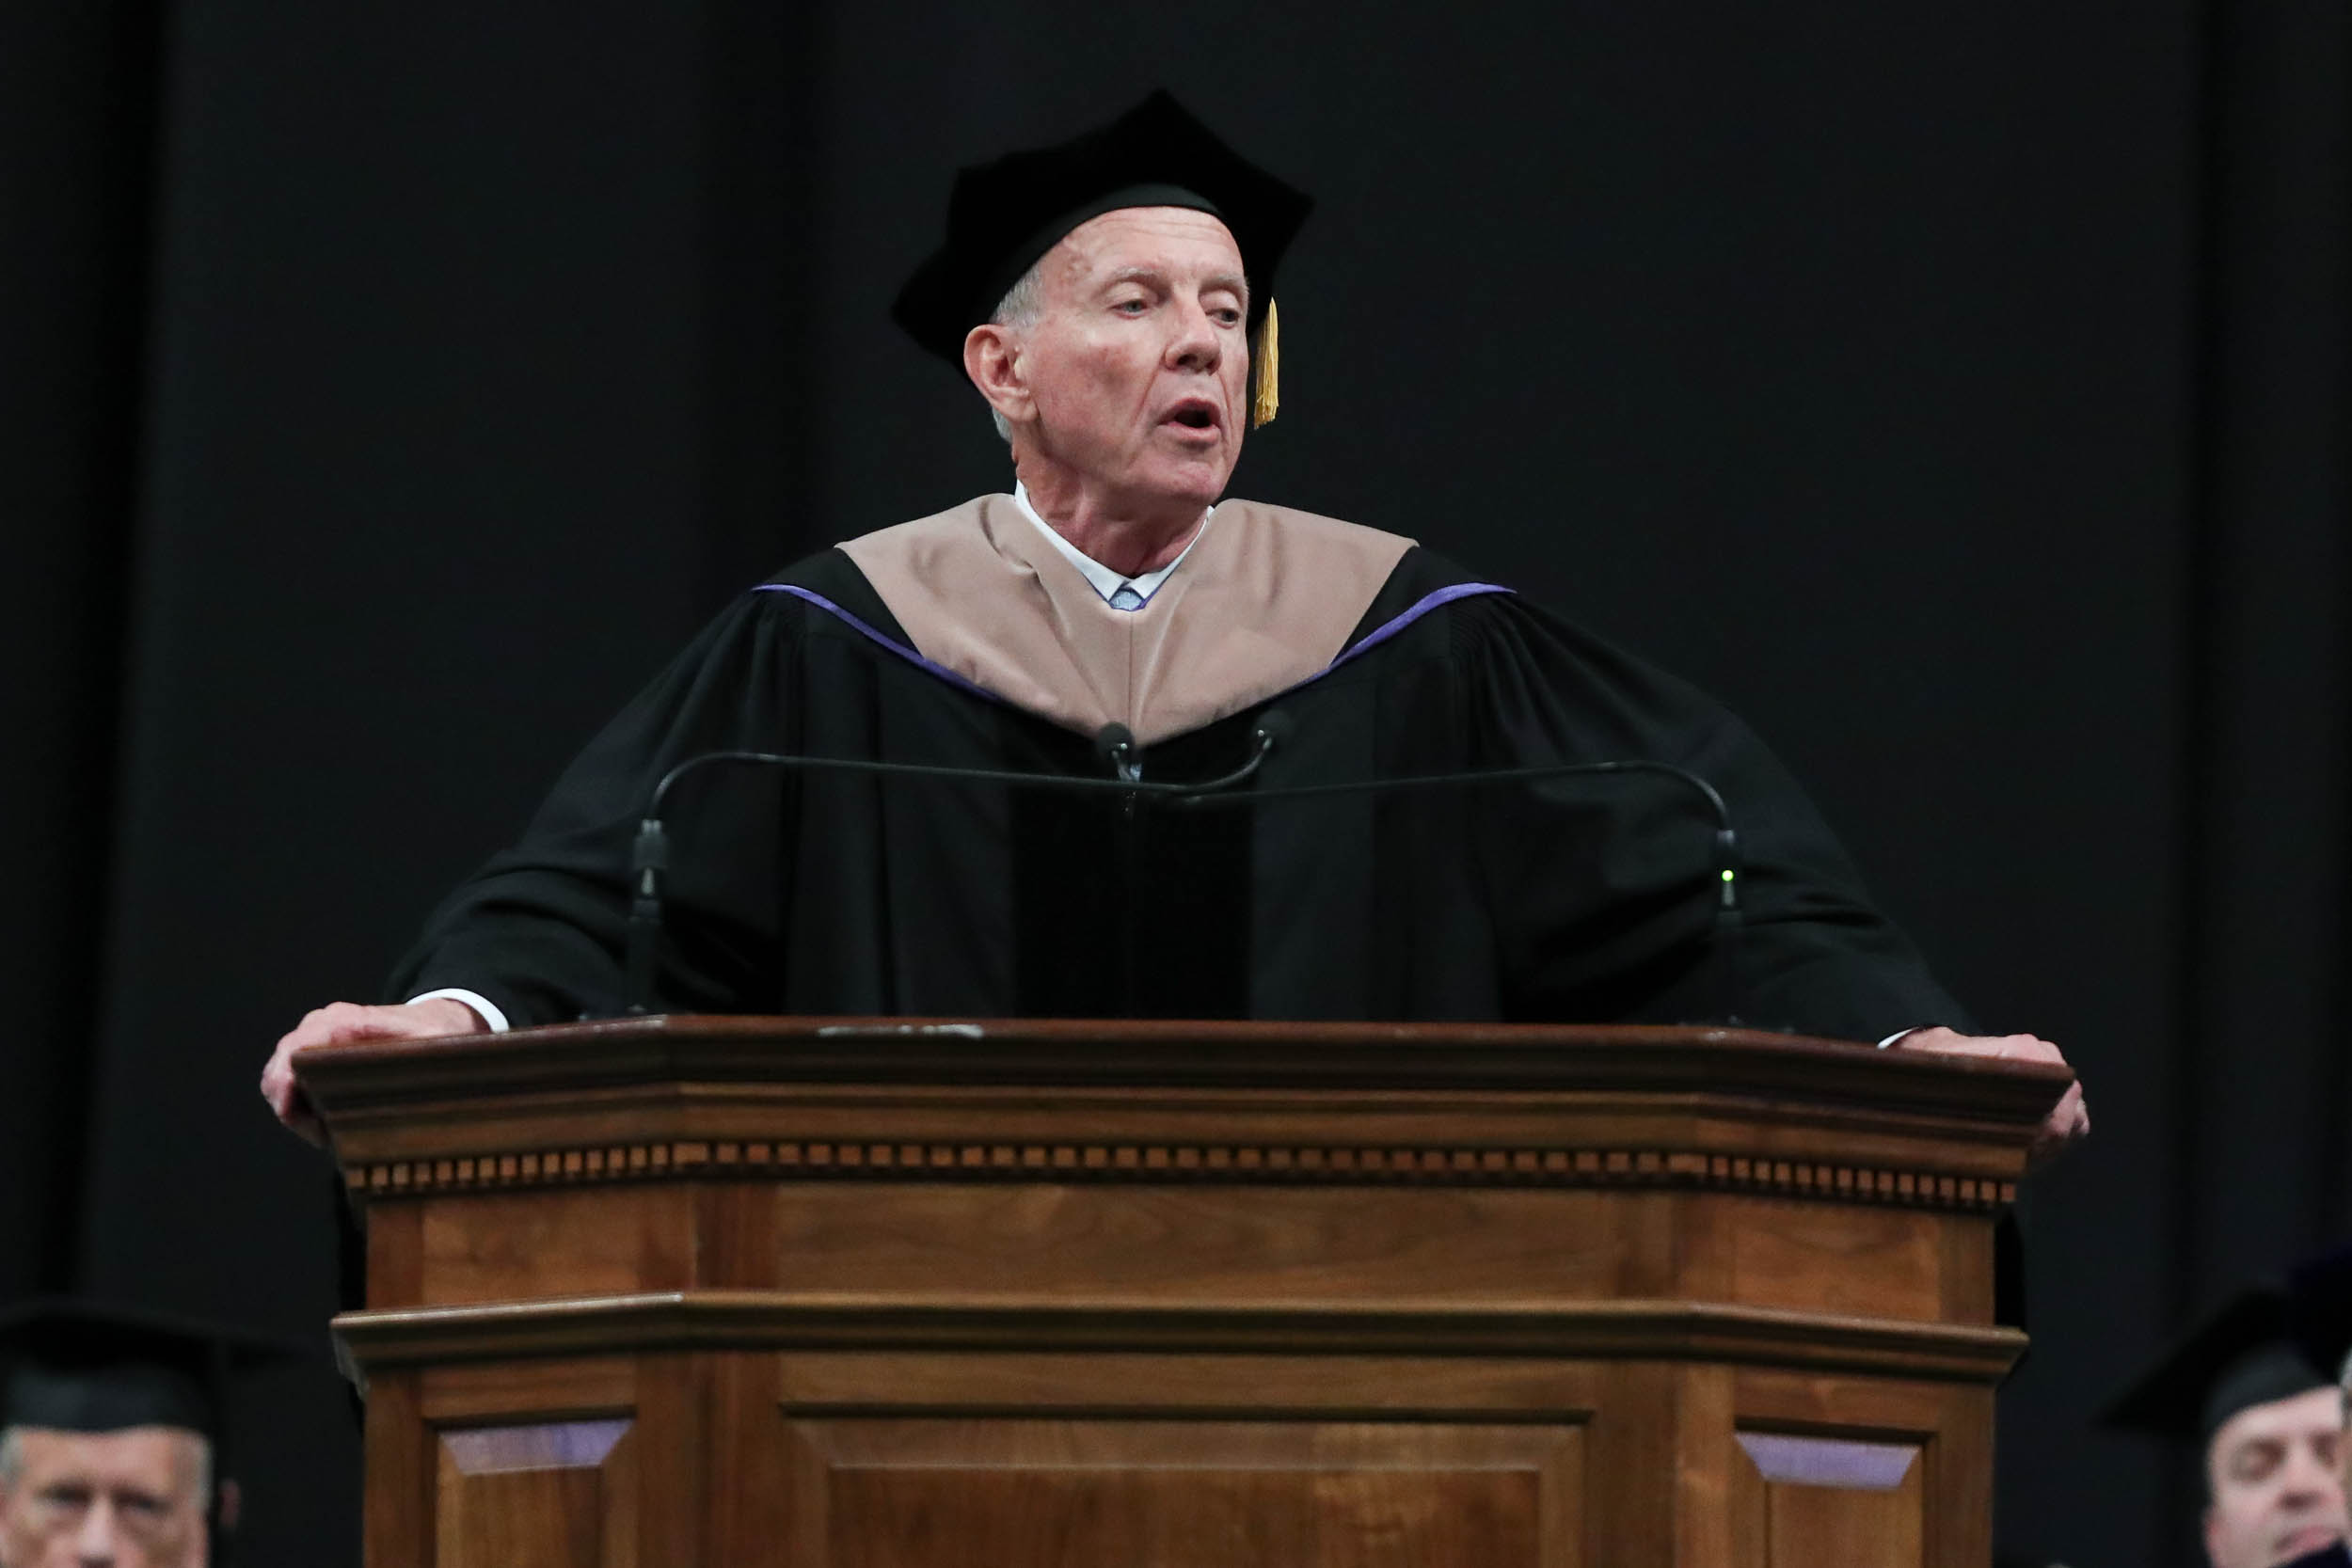 Robert D. Sweeney, who led capital campaigns that raised more than $4 billion for the University, received the Thomas Jefferson Award for Service.